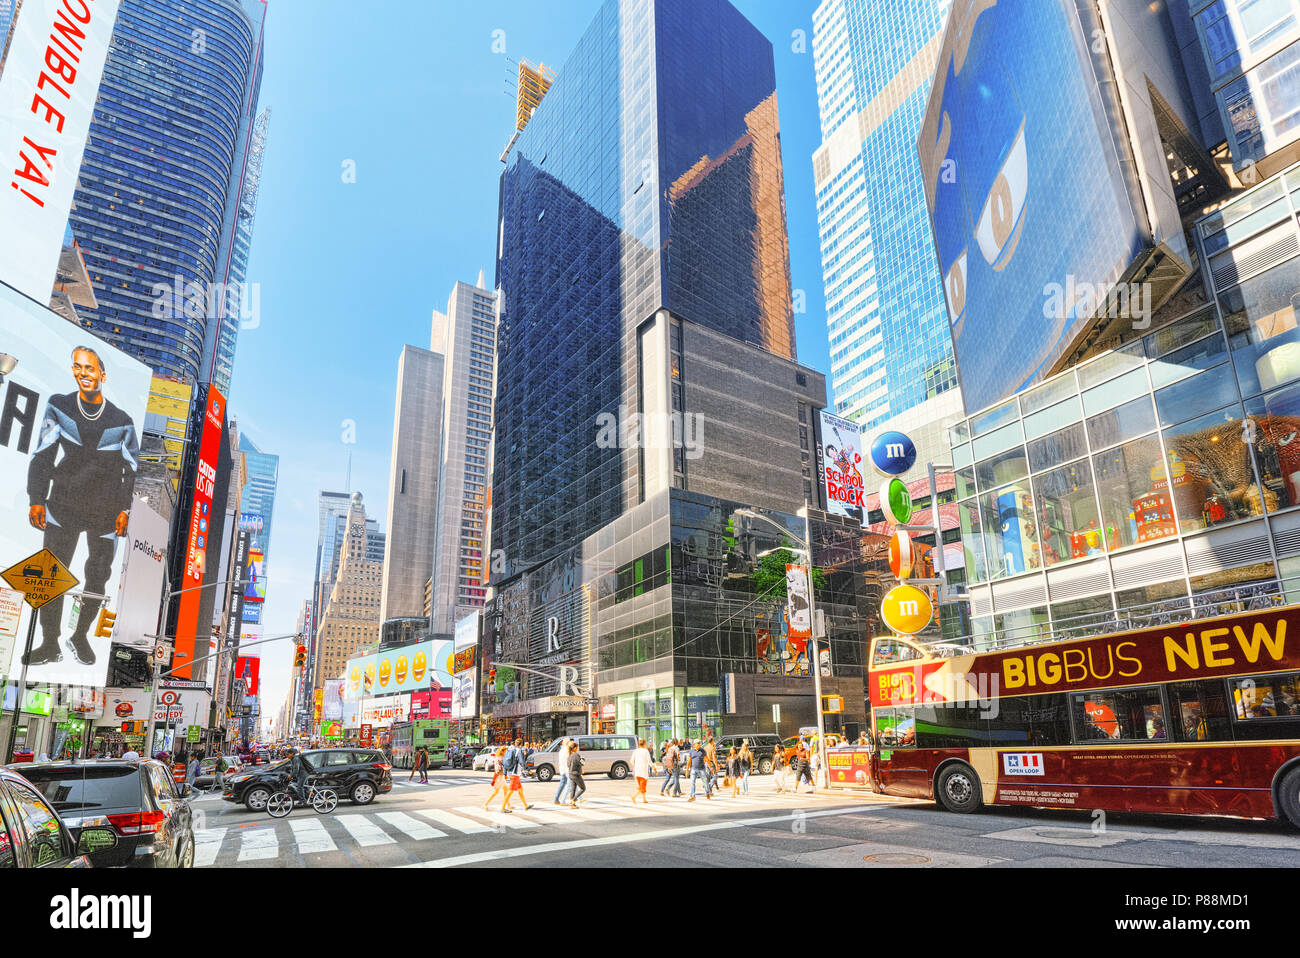 New York, USA- August 14, 2017 : 7 th Avenue and  Candy Store M&M's in  New York near Times Square.Street, cars, people and tourists on it. Stock Photo